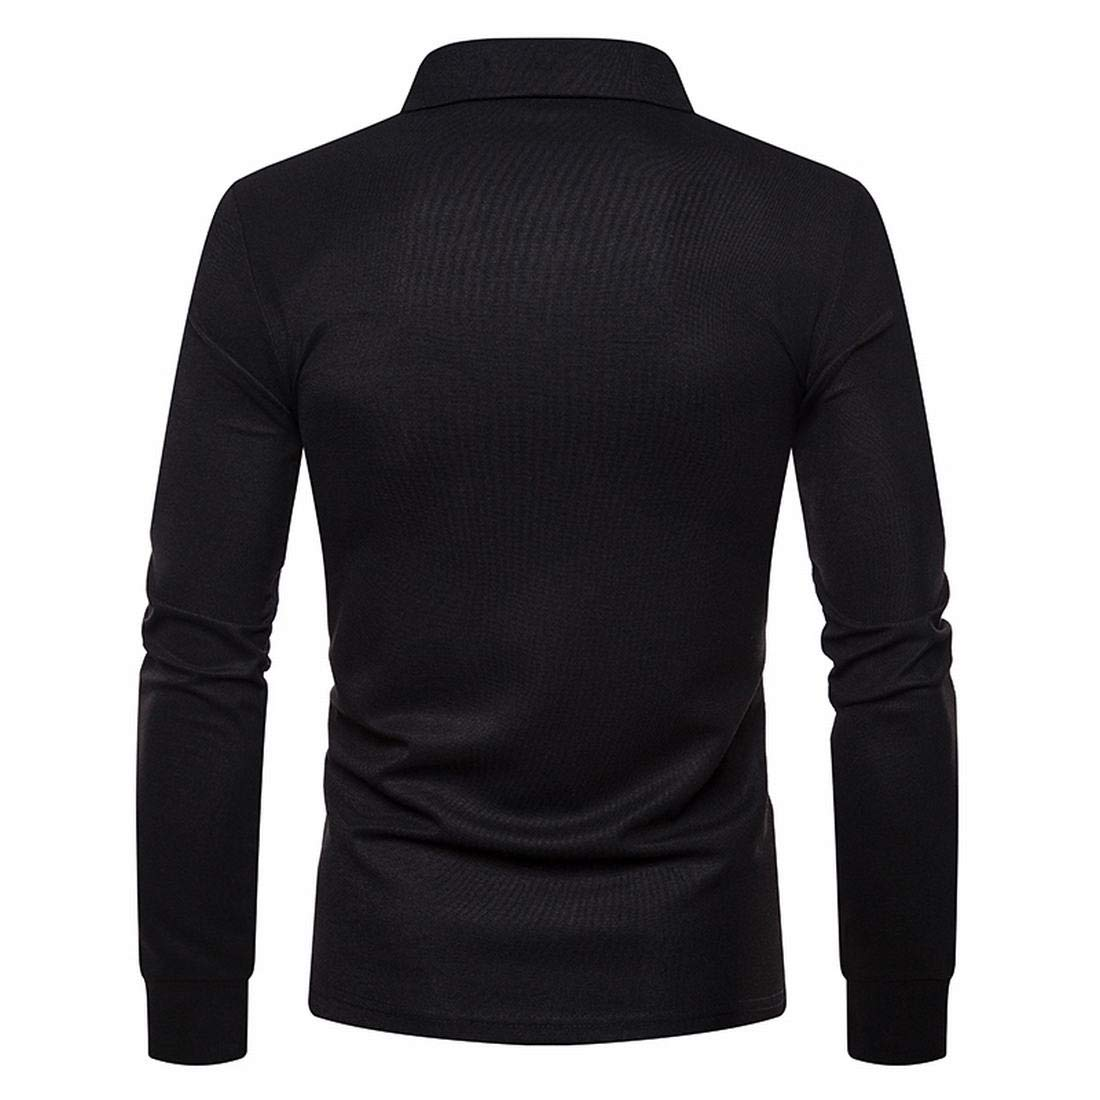 716145bfcd88 JXG Men Men's Long Sleeve Slim Fit Solid Color Tee Plus Size Golf Polo Shirt  at Amazon Men's Clothing store: